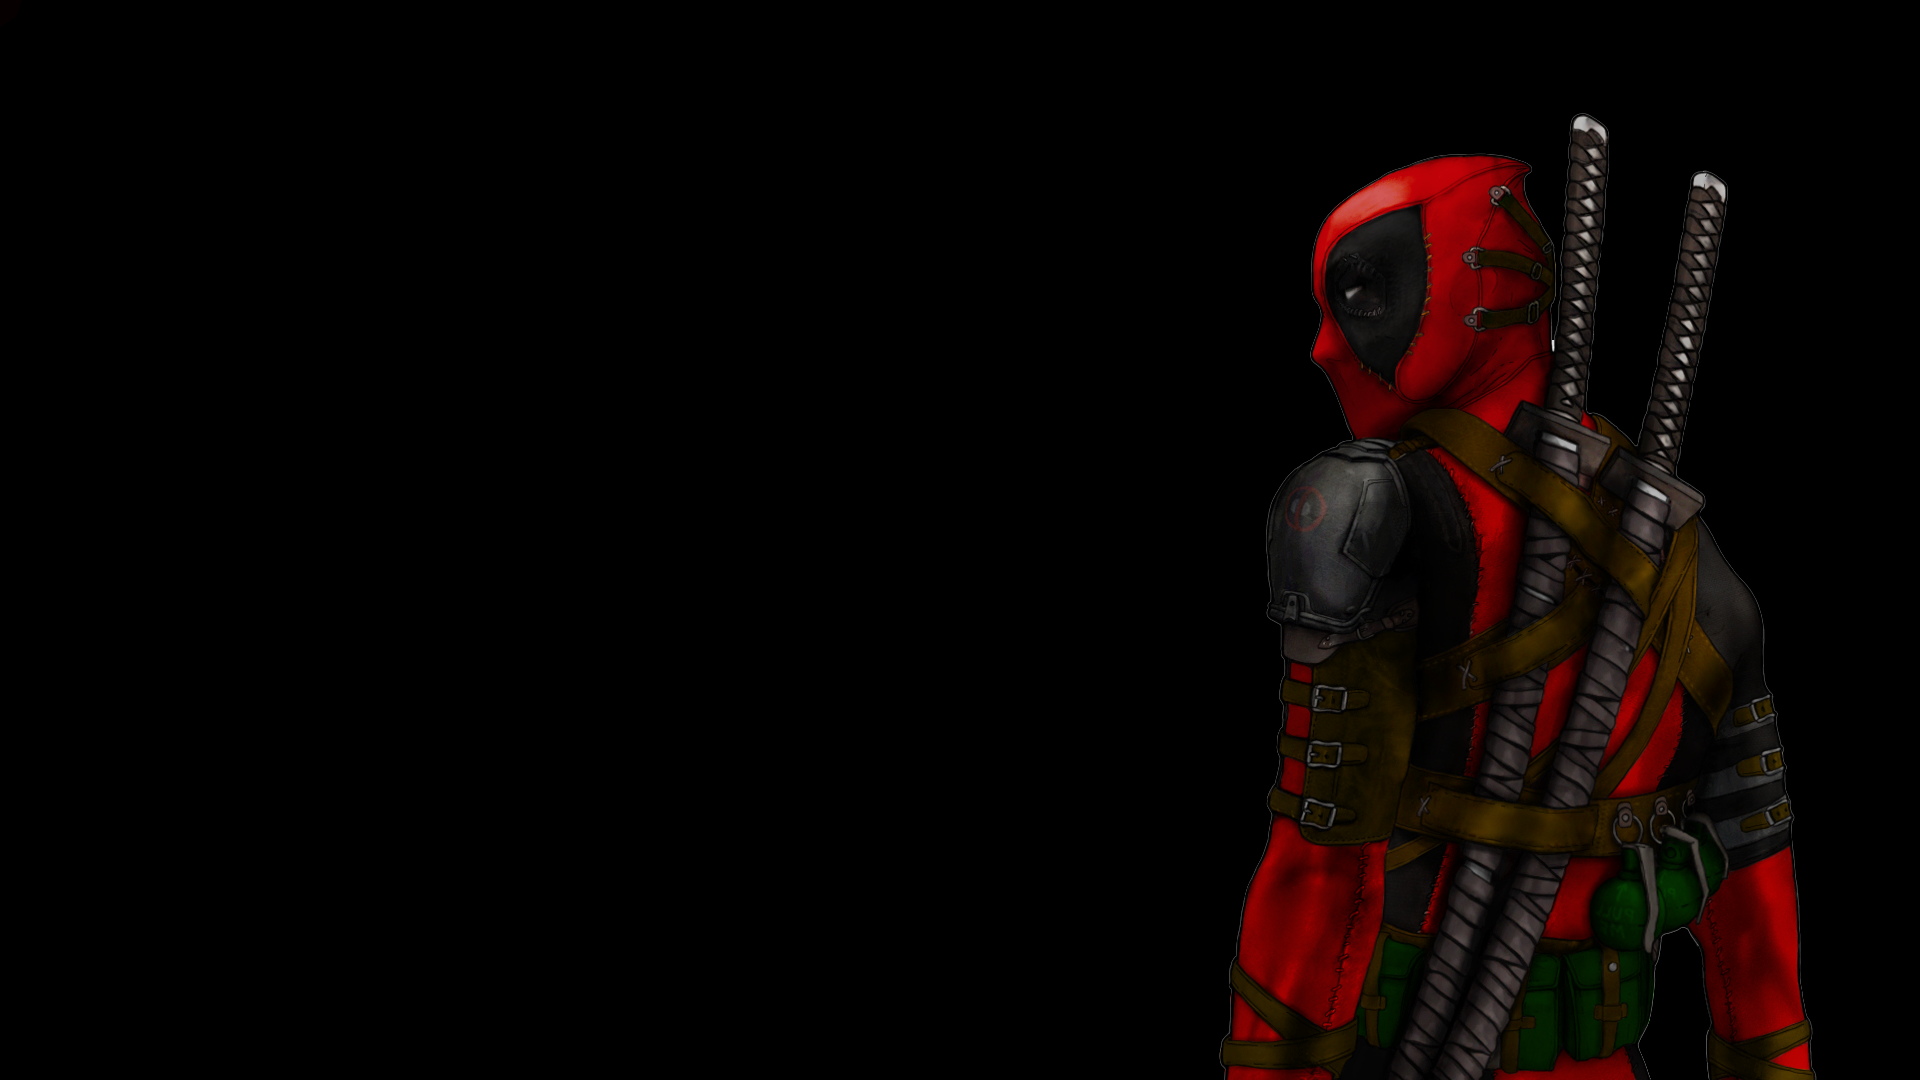 Deadpool Movie Wallpaper 1920x1080